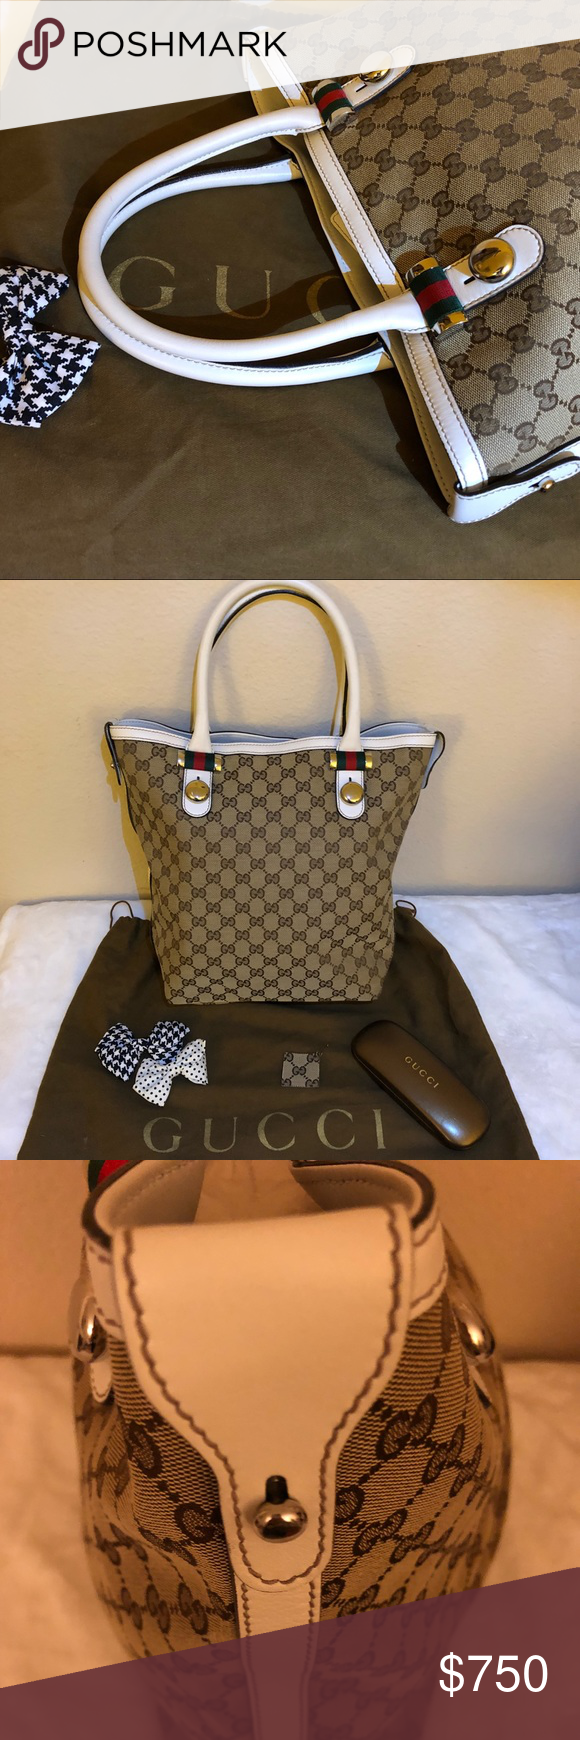 552f9fcd32c0 Gucci medium tote bag Authentic Gucci Canvas Tote It comes with a dust bag  and a